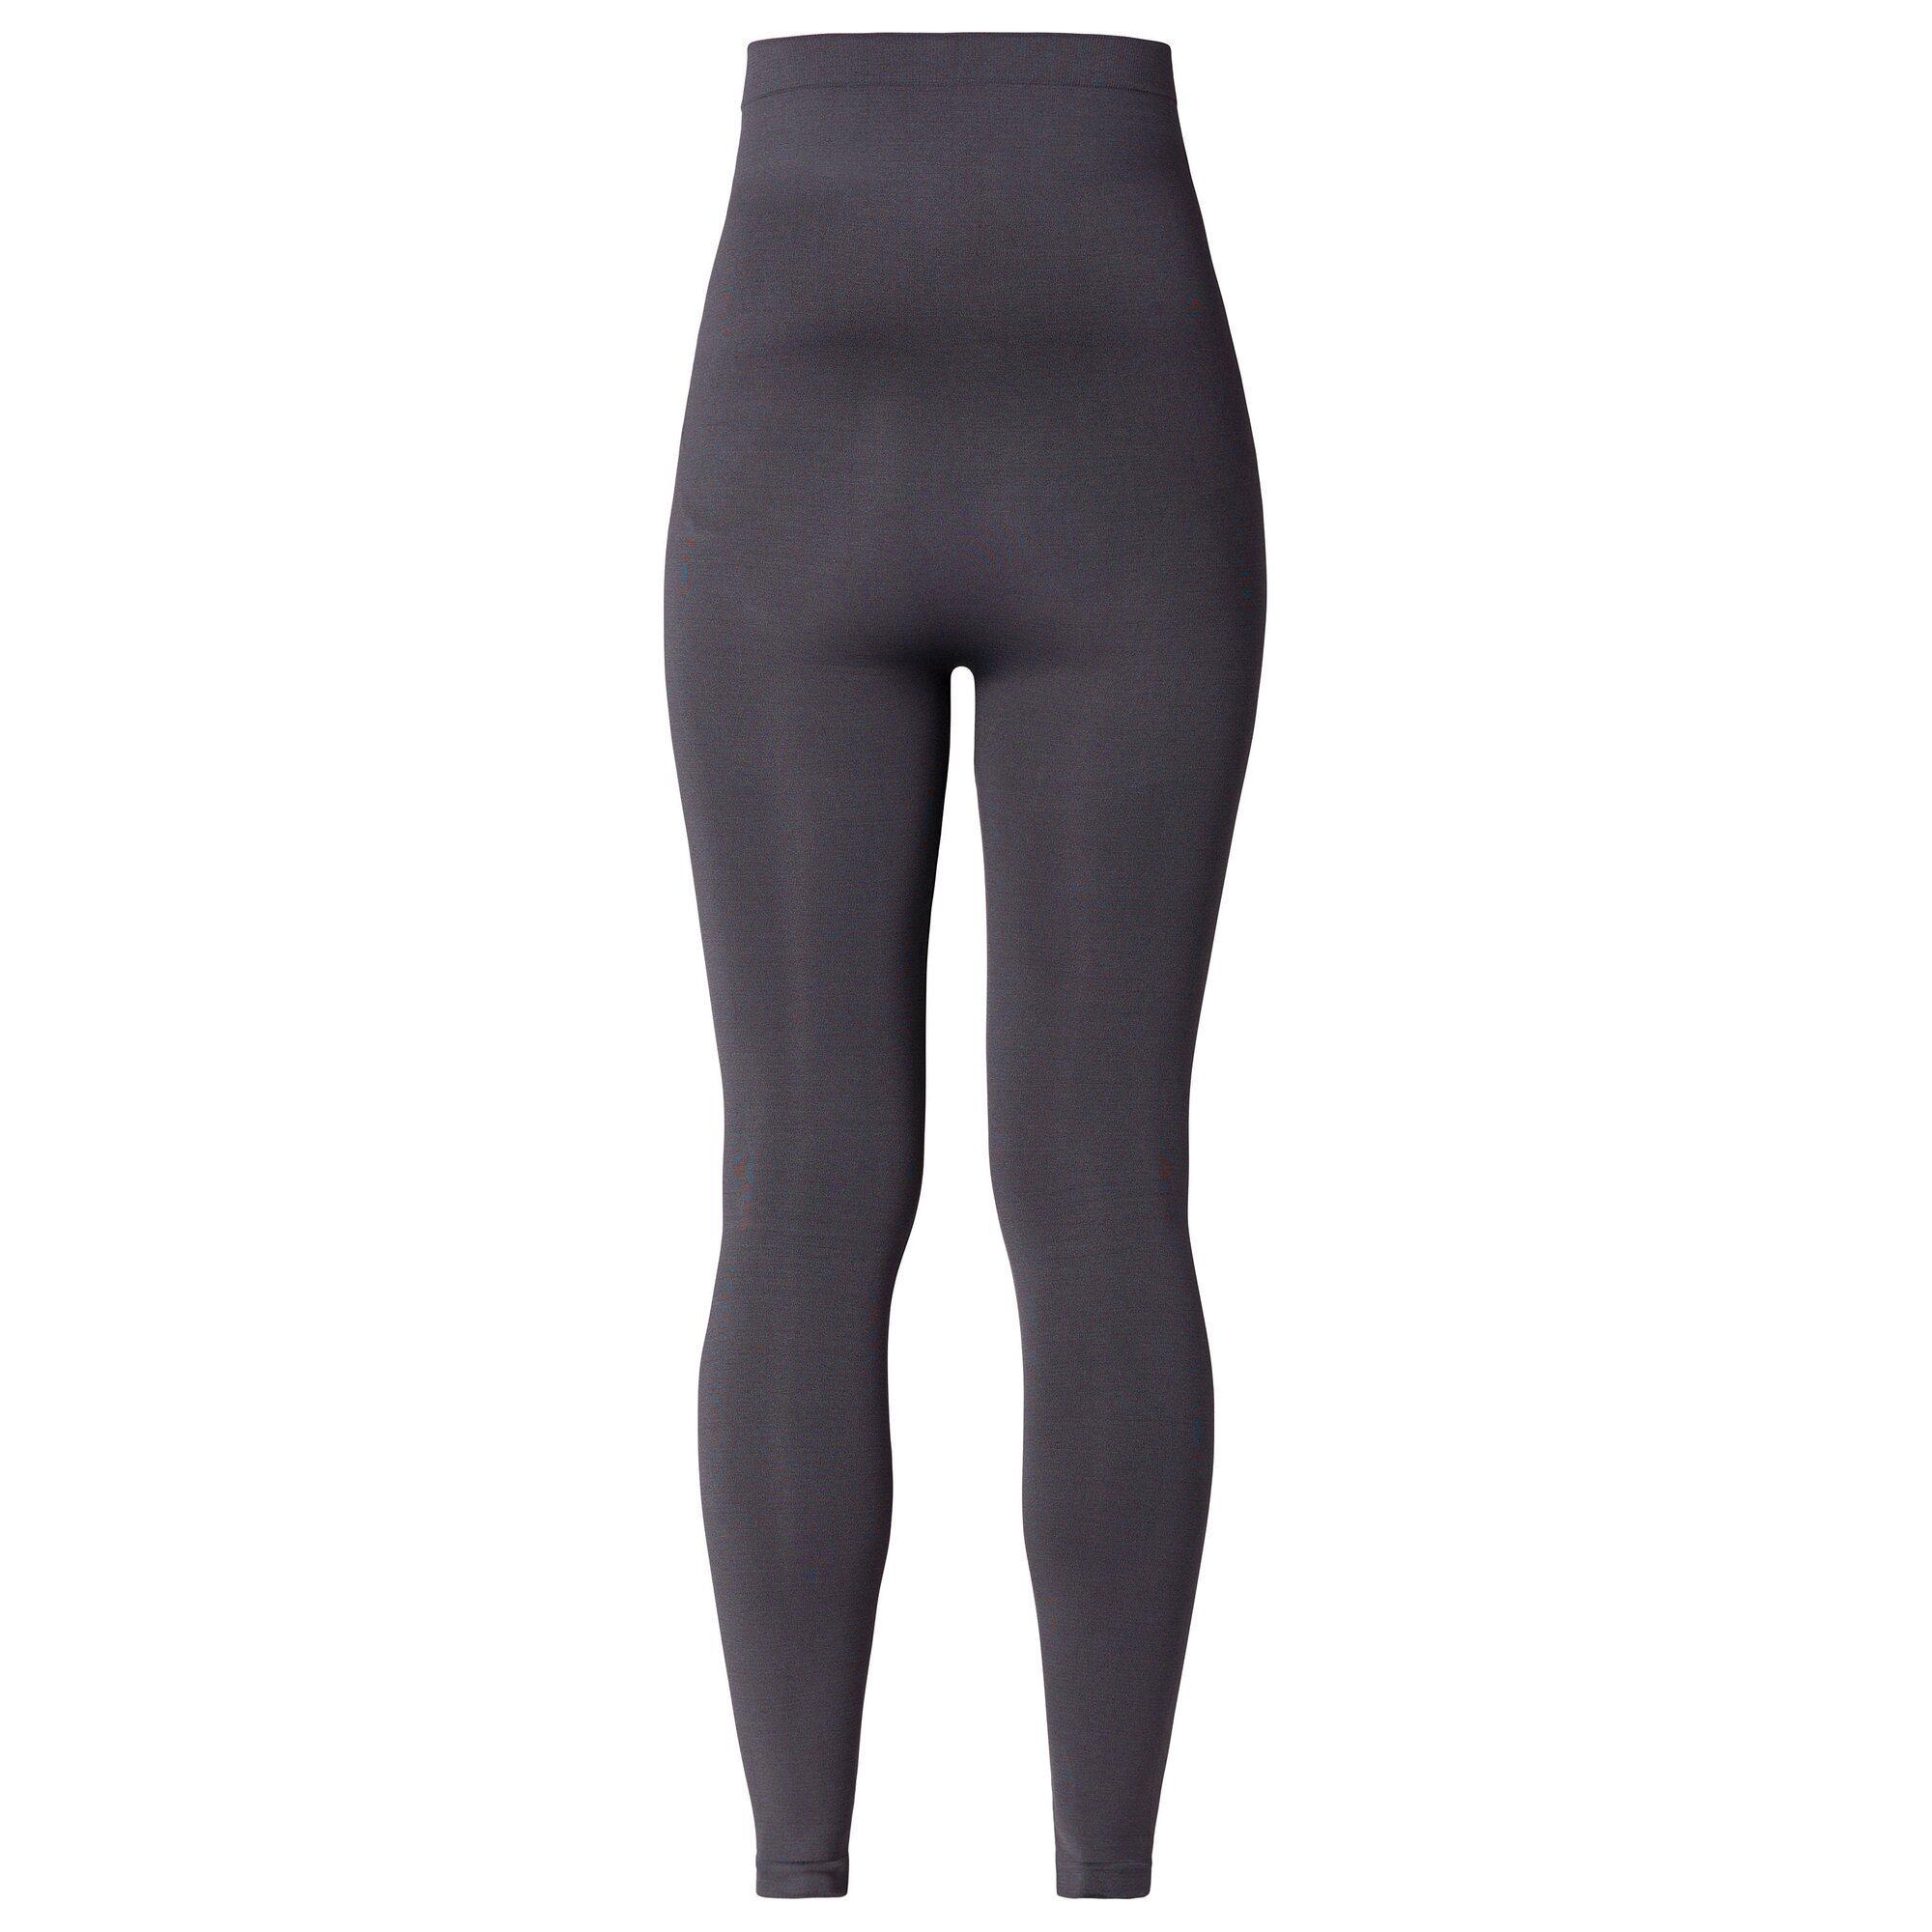 noppies-umstandsleggings-cara, 19.99 EUR @ babywalz-de